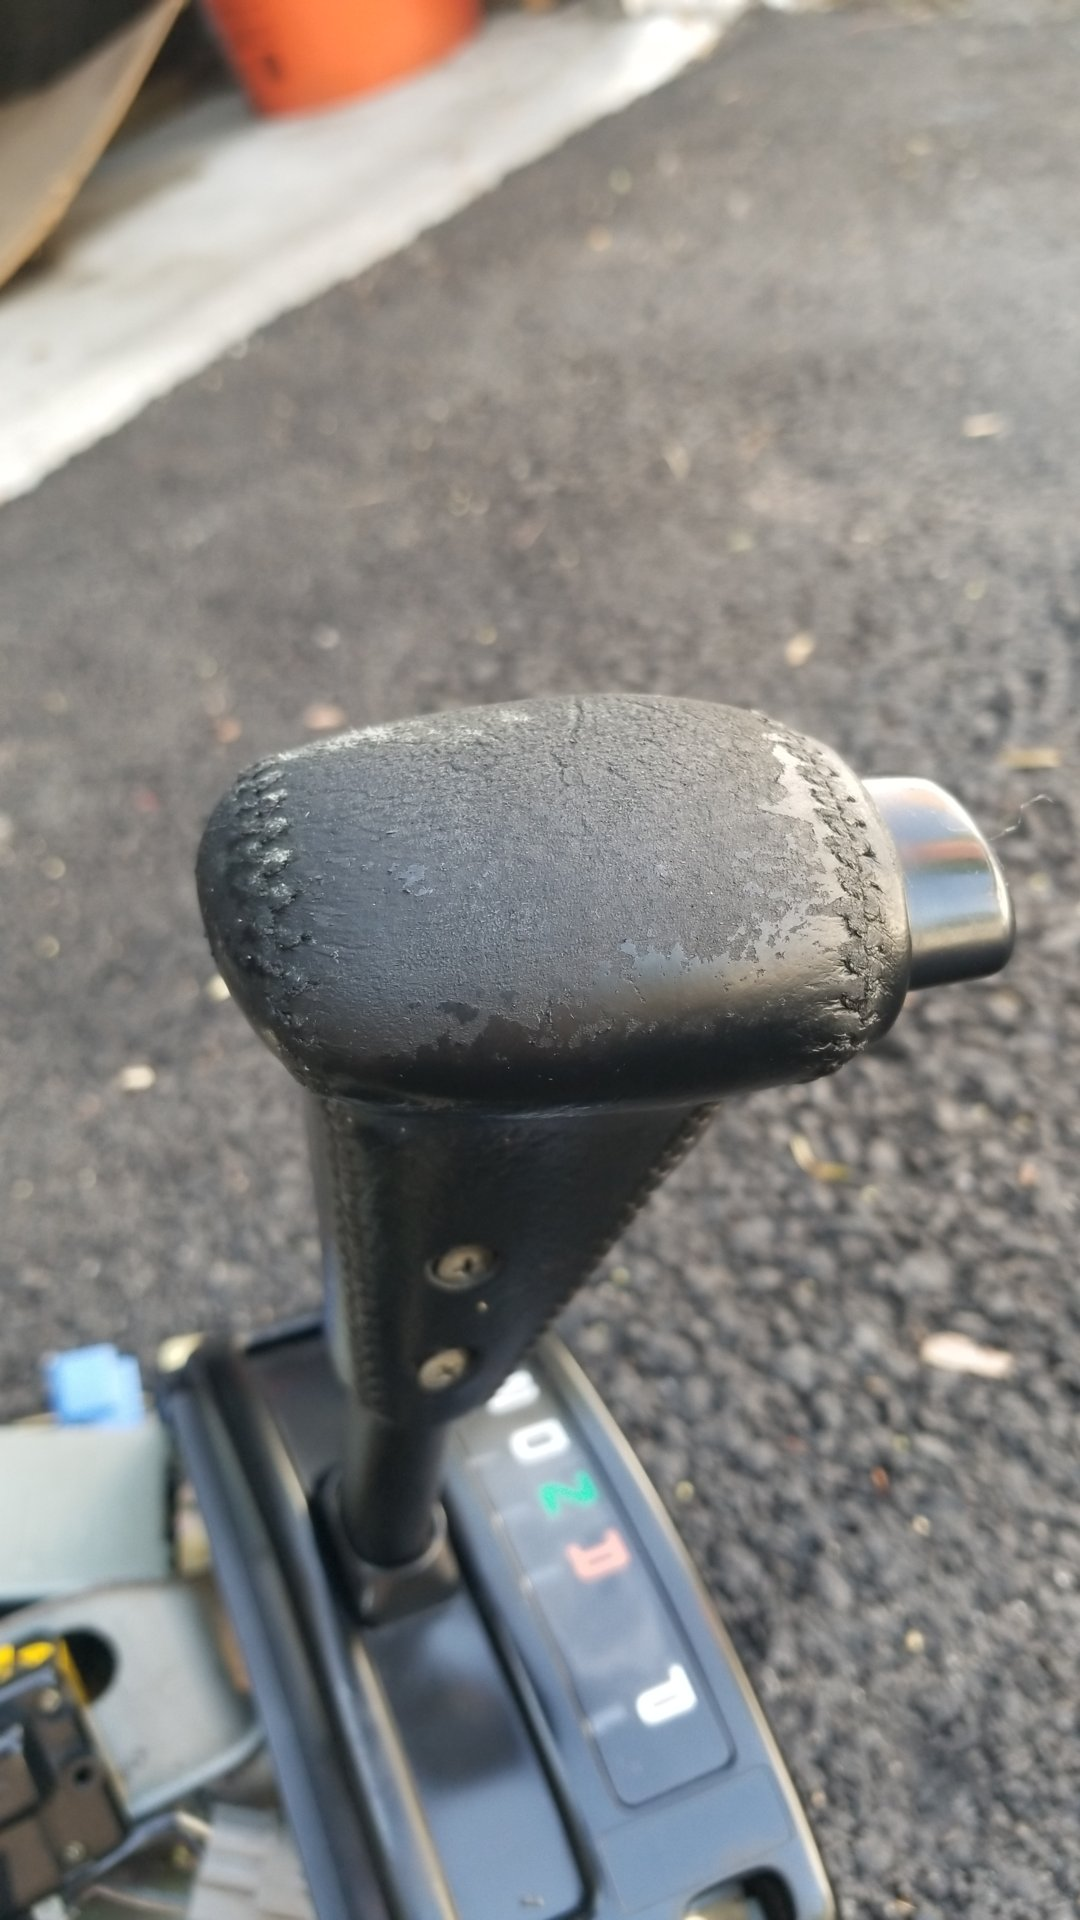 Peeling and cracking leather shifter and other items - Restoration